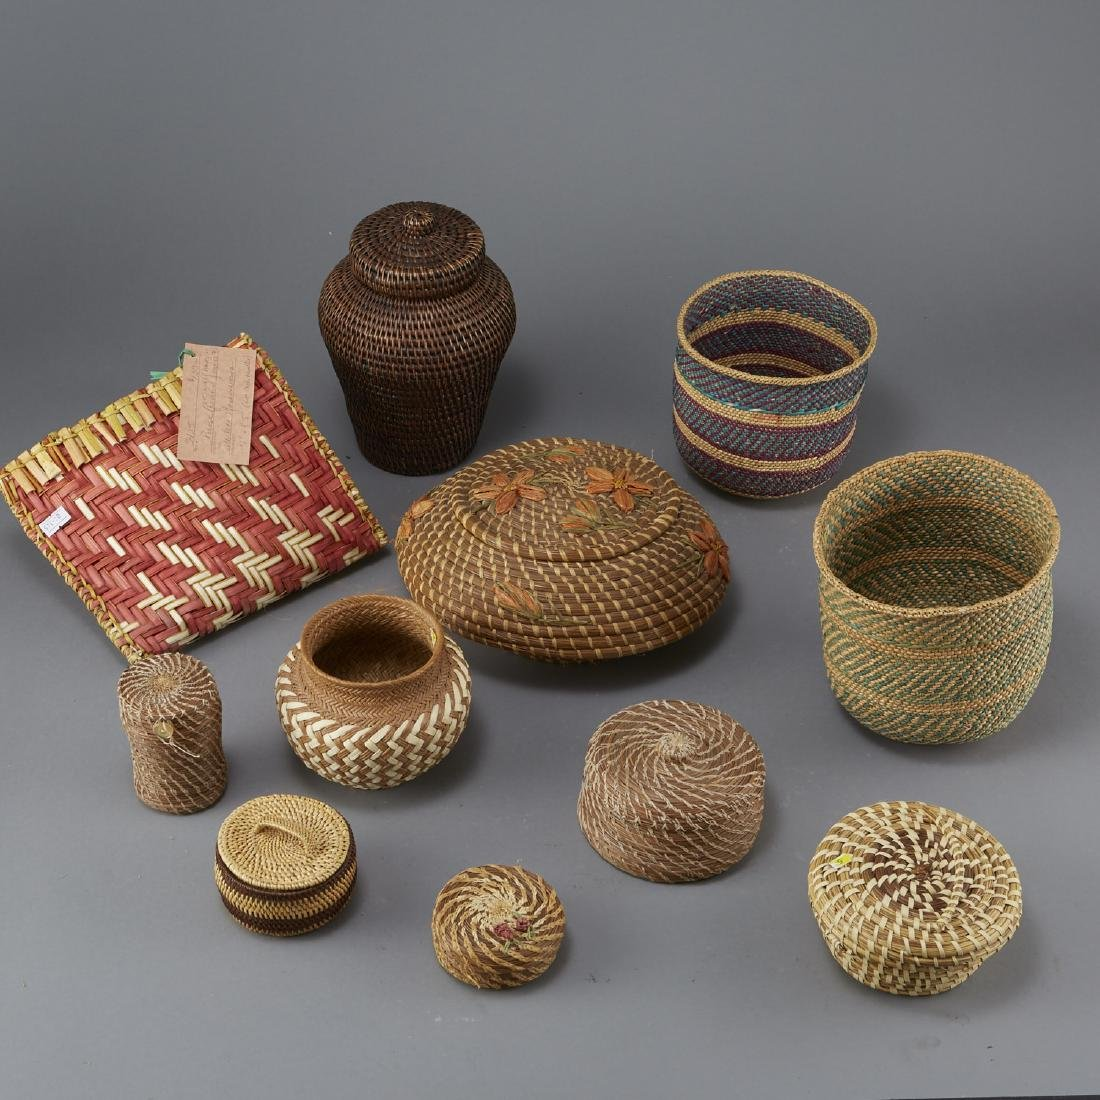 Group of 11 Native American Woven Objects